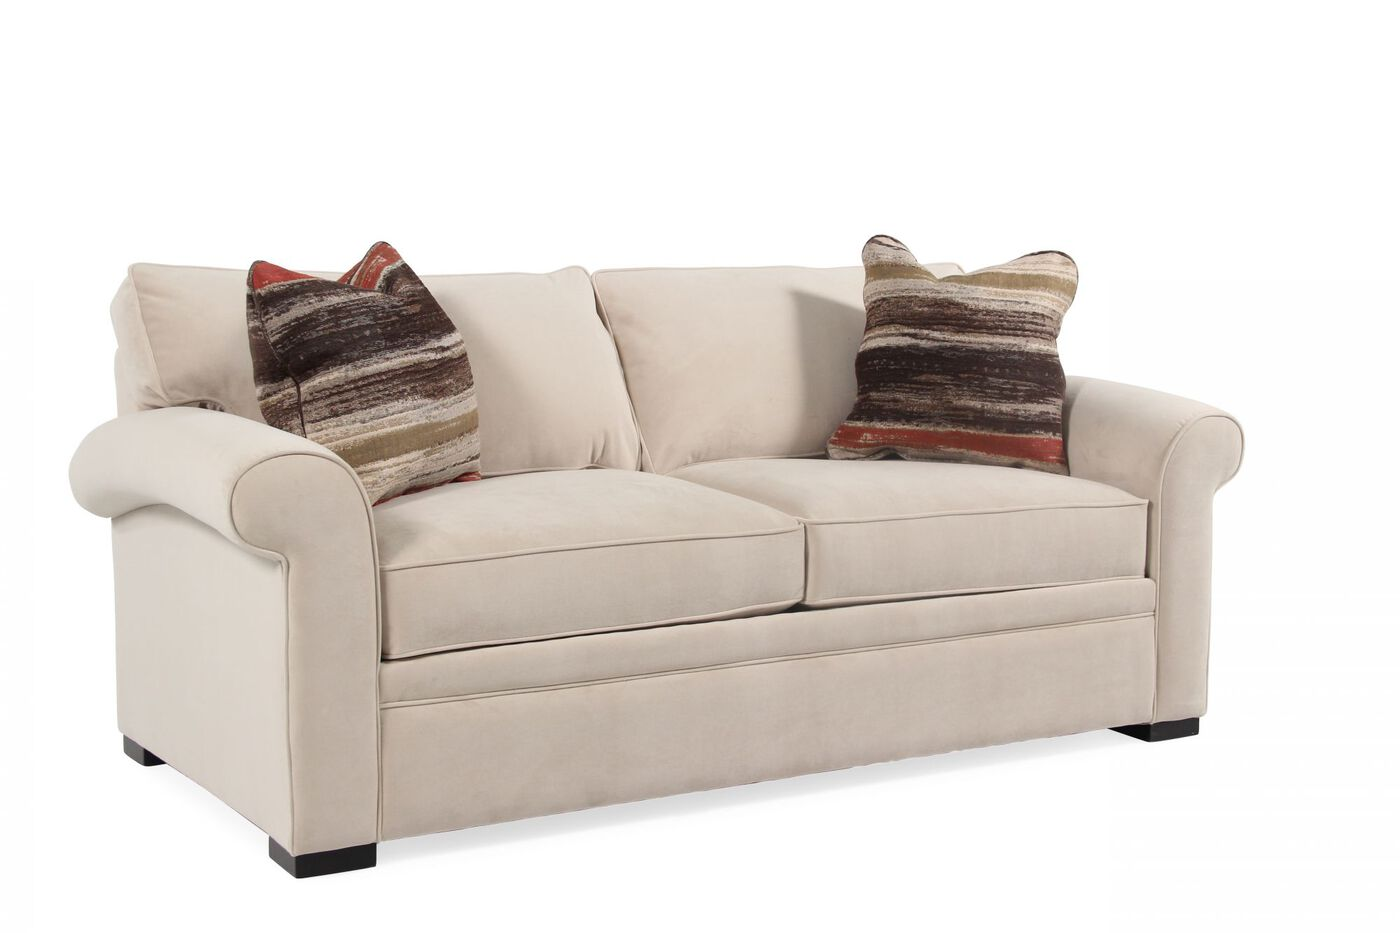 Transitional 38 Full Sleeper Loveseat In Cream Mathis Brothers Furniture